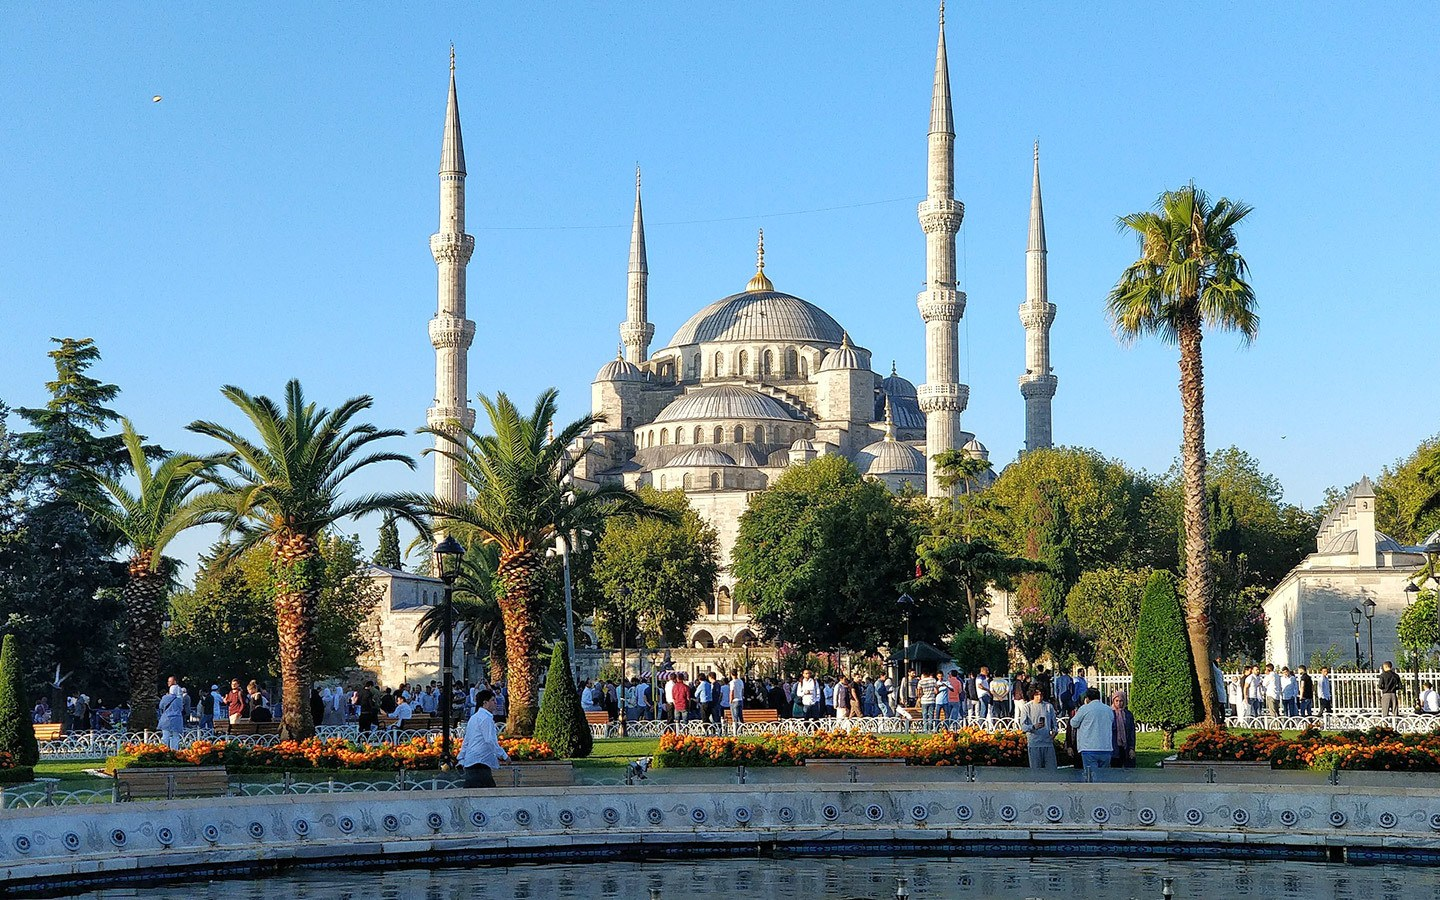 The Sultan Ahmed Mosque – or Blue Mosque – in Sultanahmet